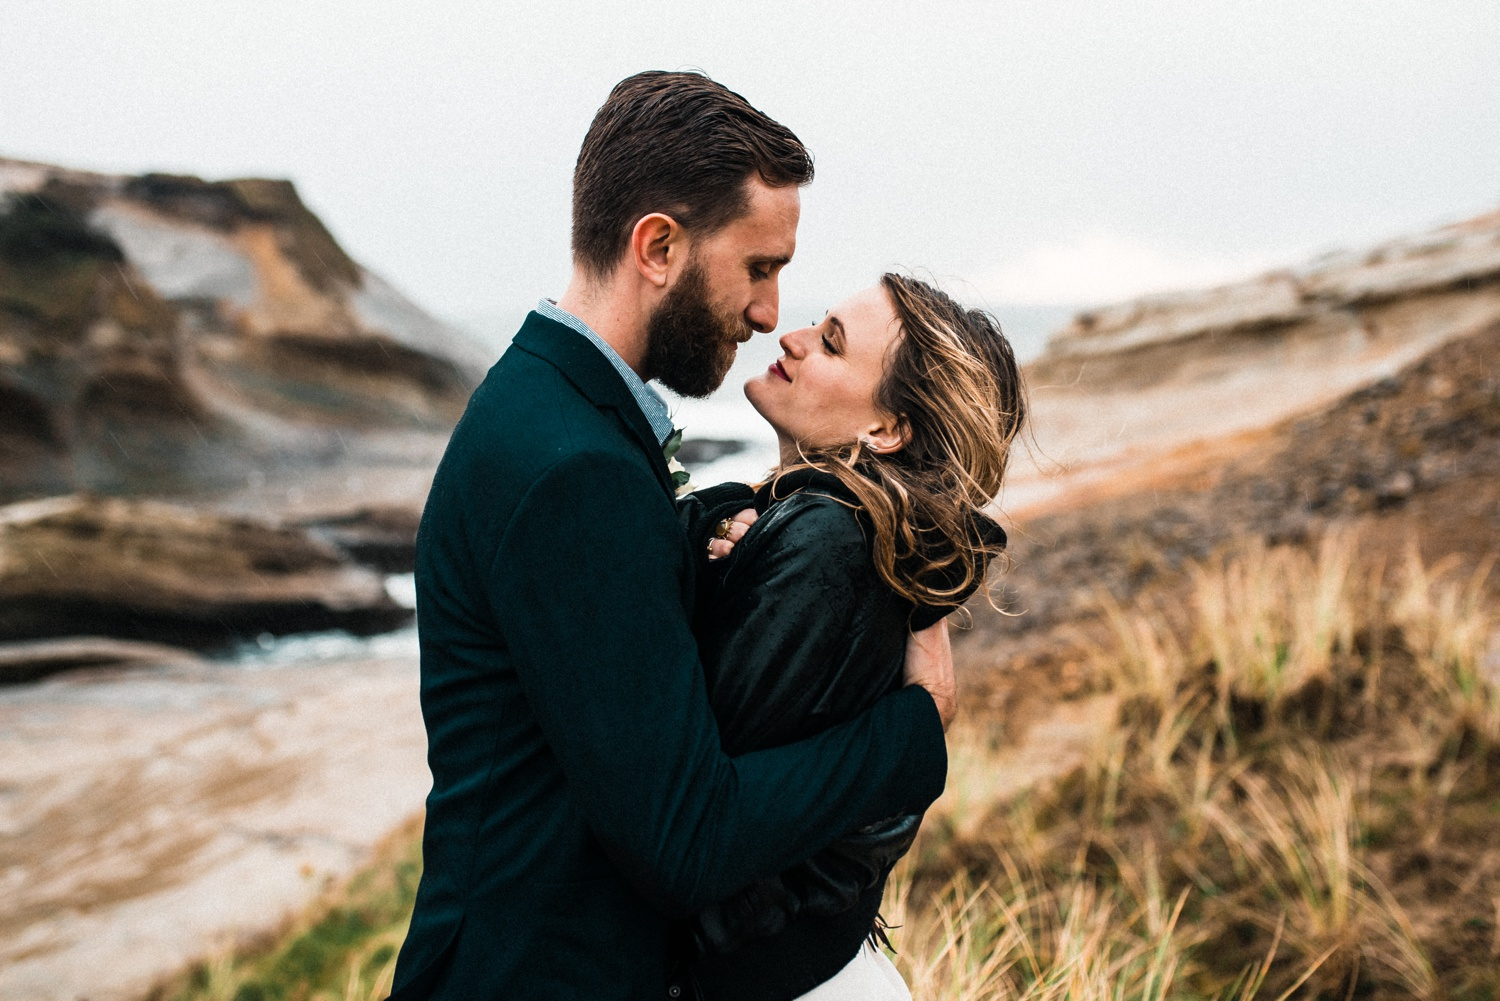 Oregon_Coast_Elopement_Wedding_The_Foxes_Photography_106.jpg